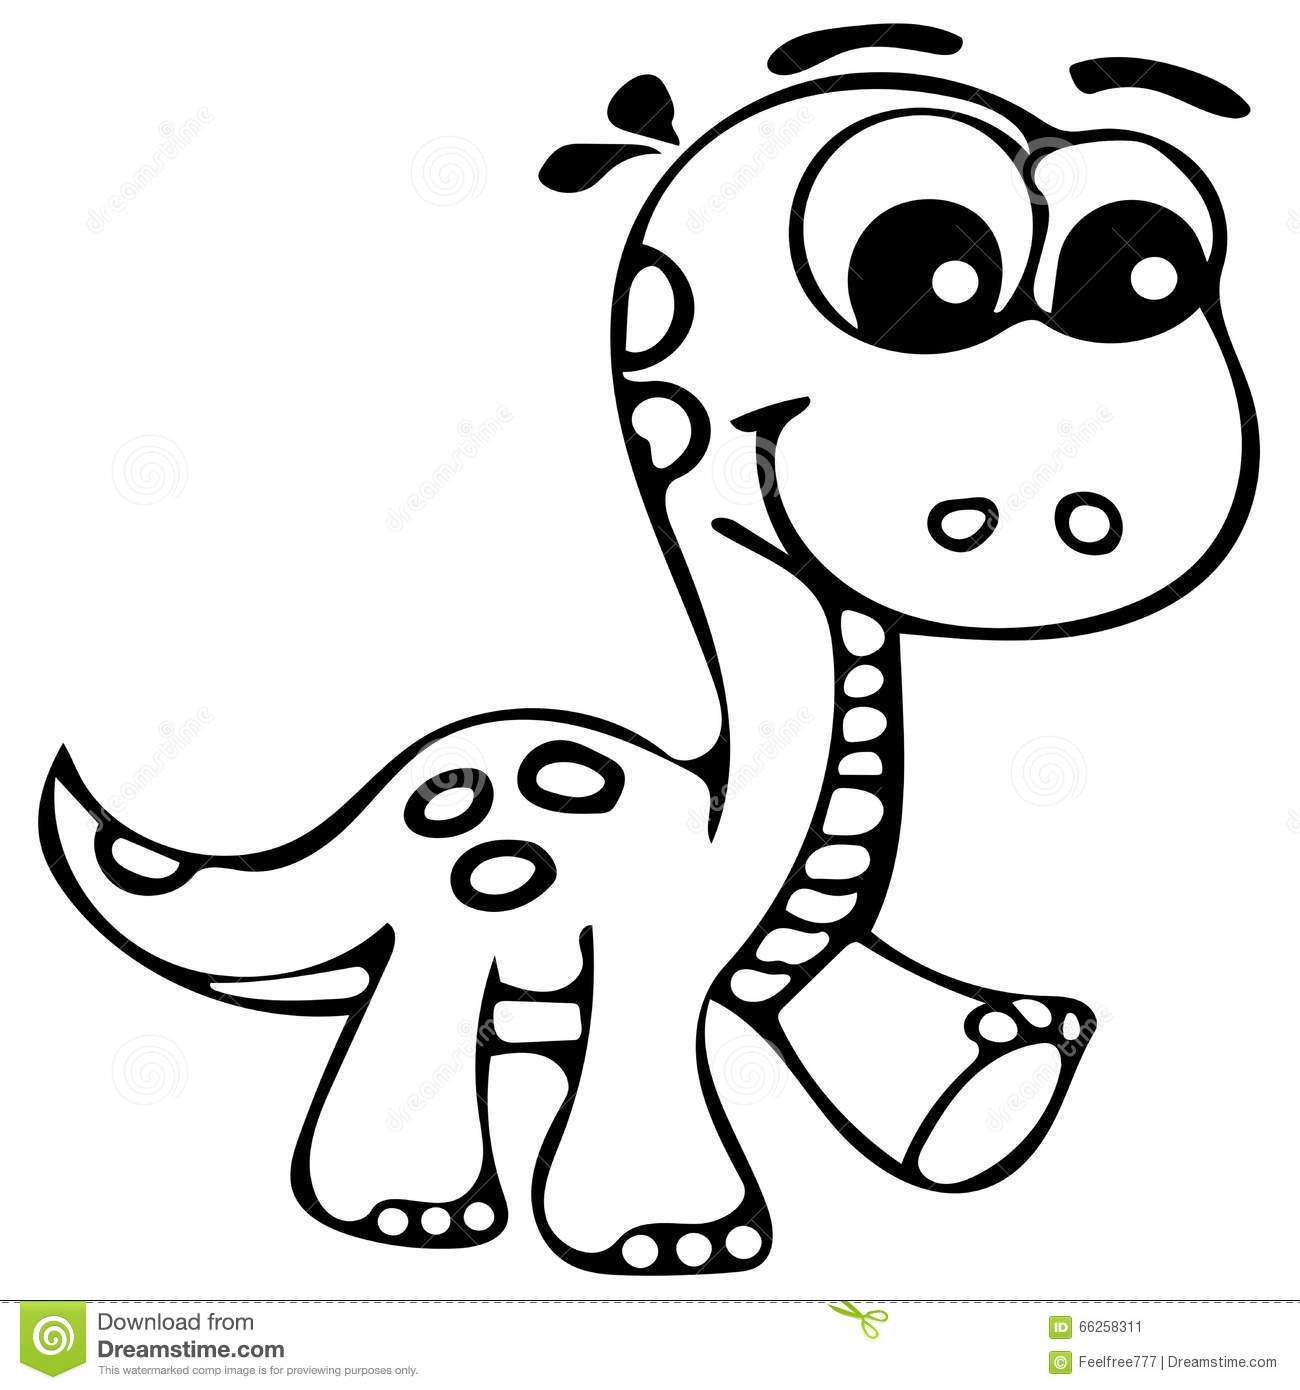 cartoon dinosaur coloring pictures triceratops cartoon dinosaur coloring pages sketch cartoon pictures coloring dinosaur